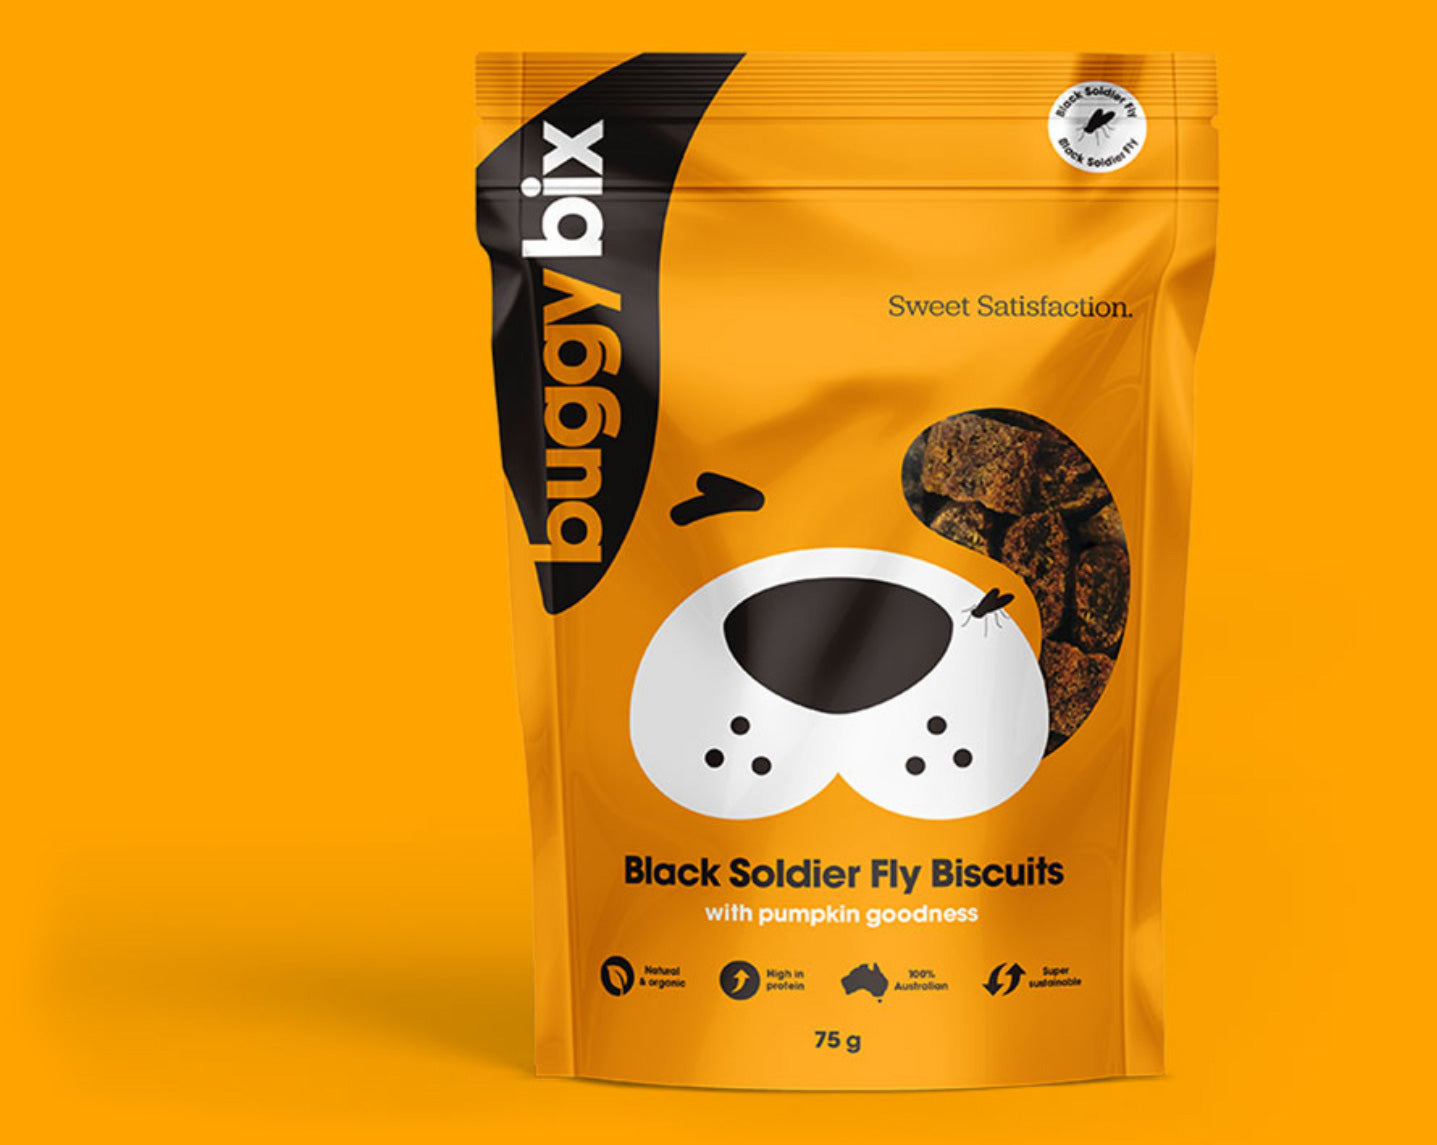 Nutritious and delicious insect treats